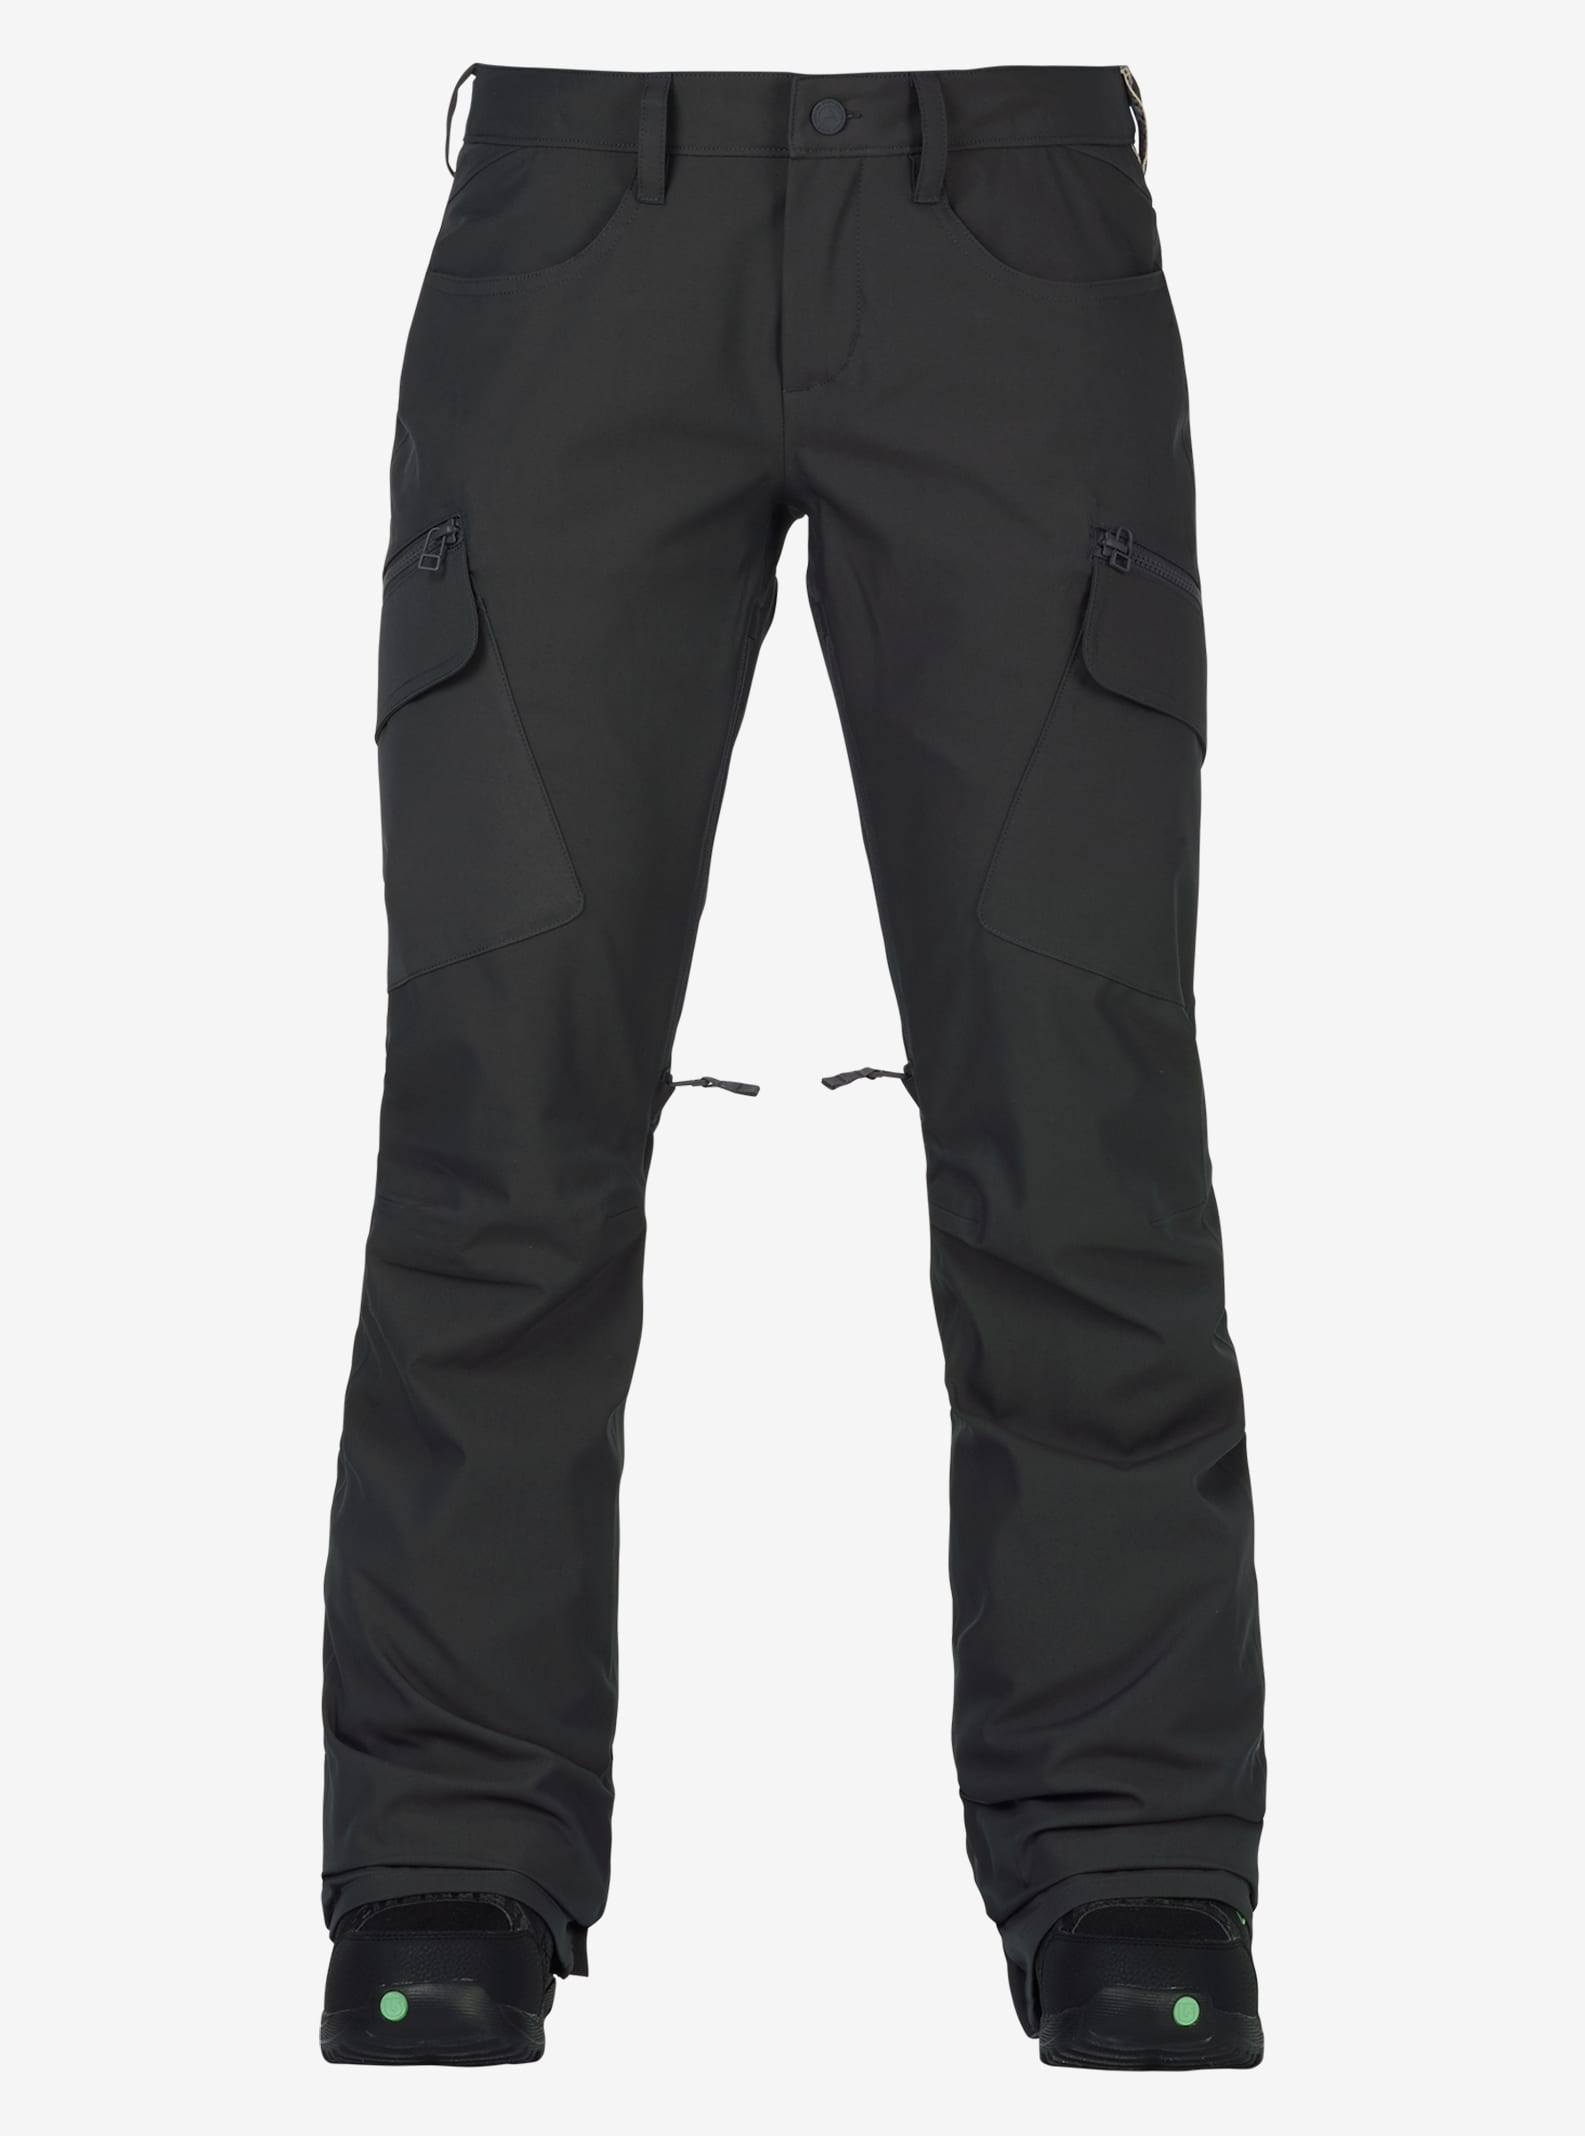 Women's Burton Gloria Pant - Tall shown in Faded